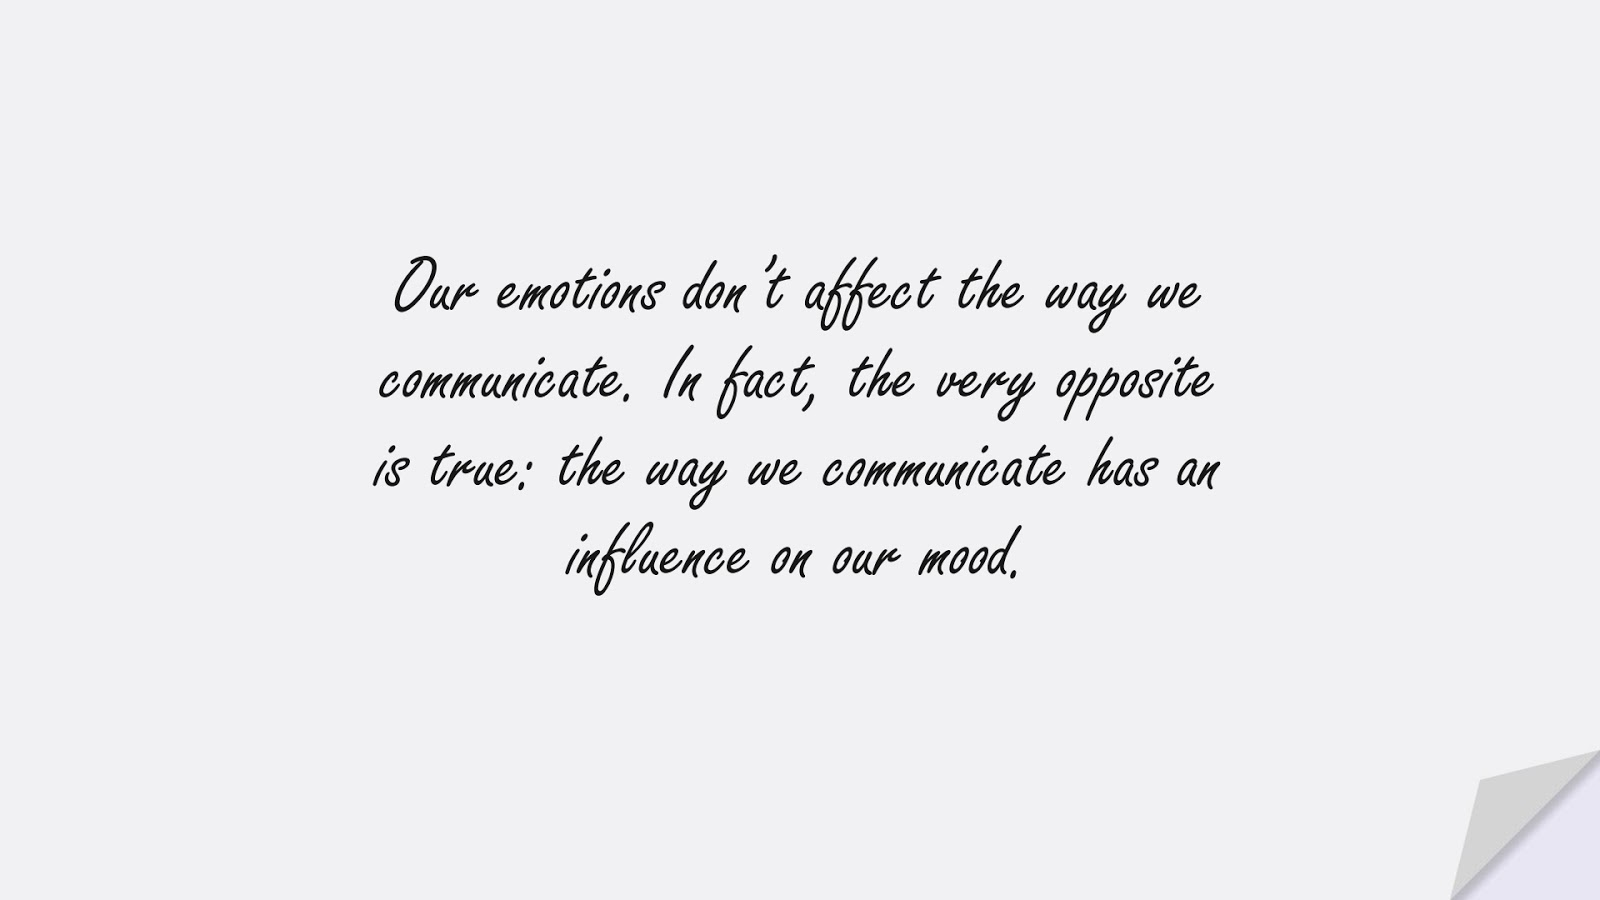 Our emotions don't affect the way we communicate. In fact, the very opposite is true: the way we communicate has an influence on our mood.FALSE